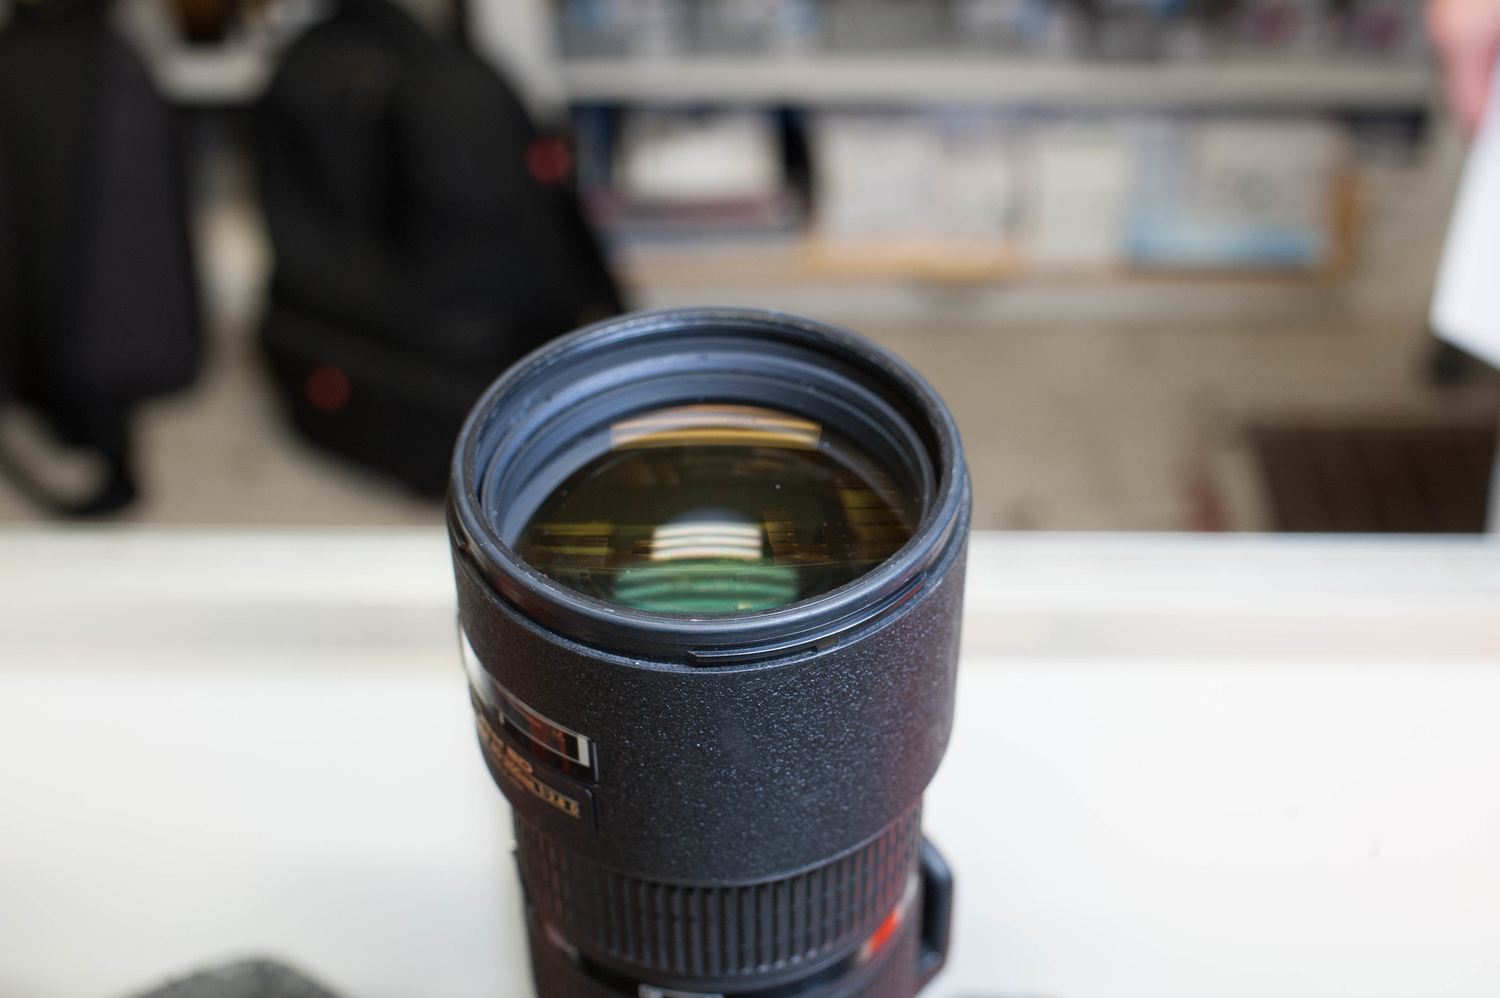 Conquering the Fear of Buying Used Photography Equipment